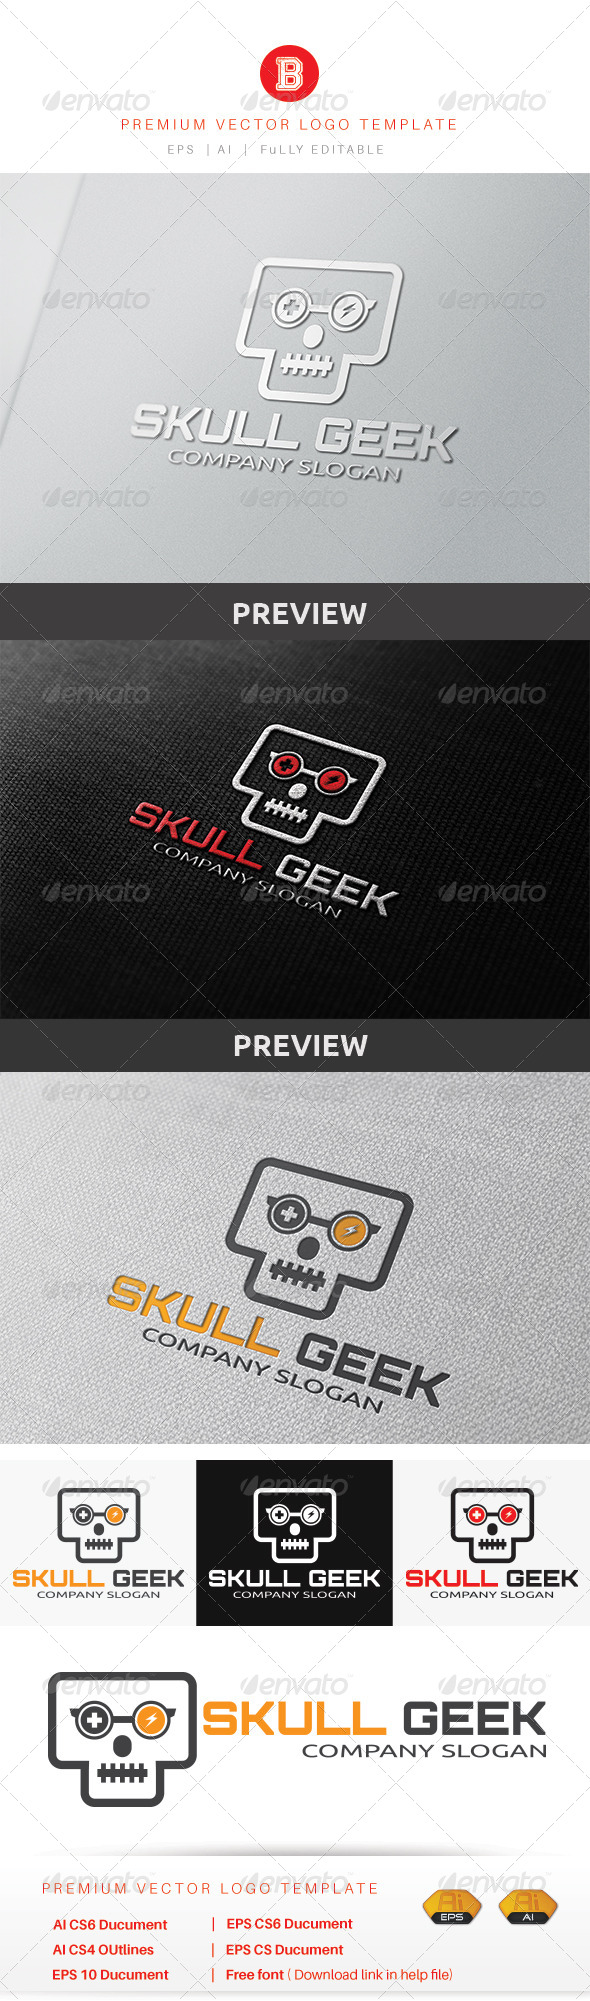 GraphicRiver Skull Geek 8560871